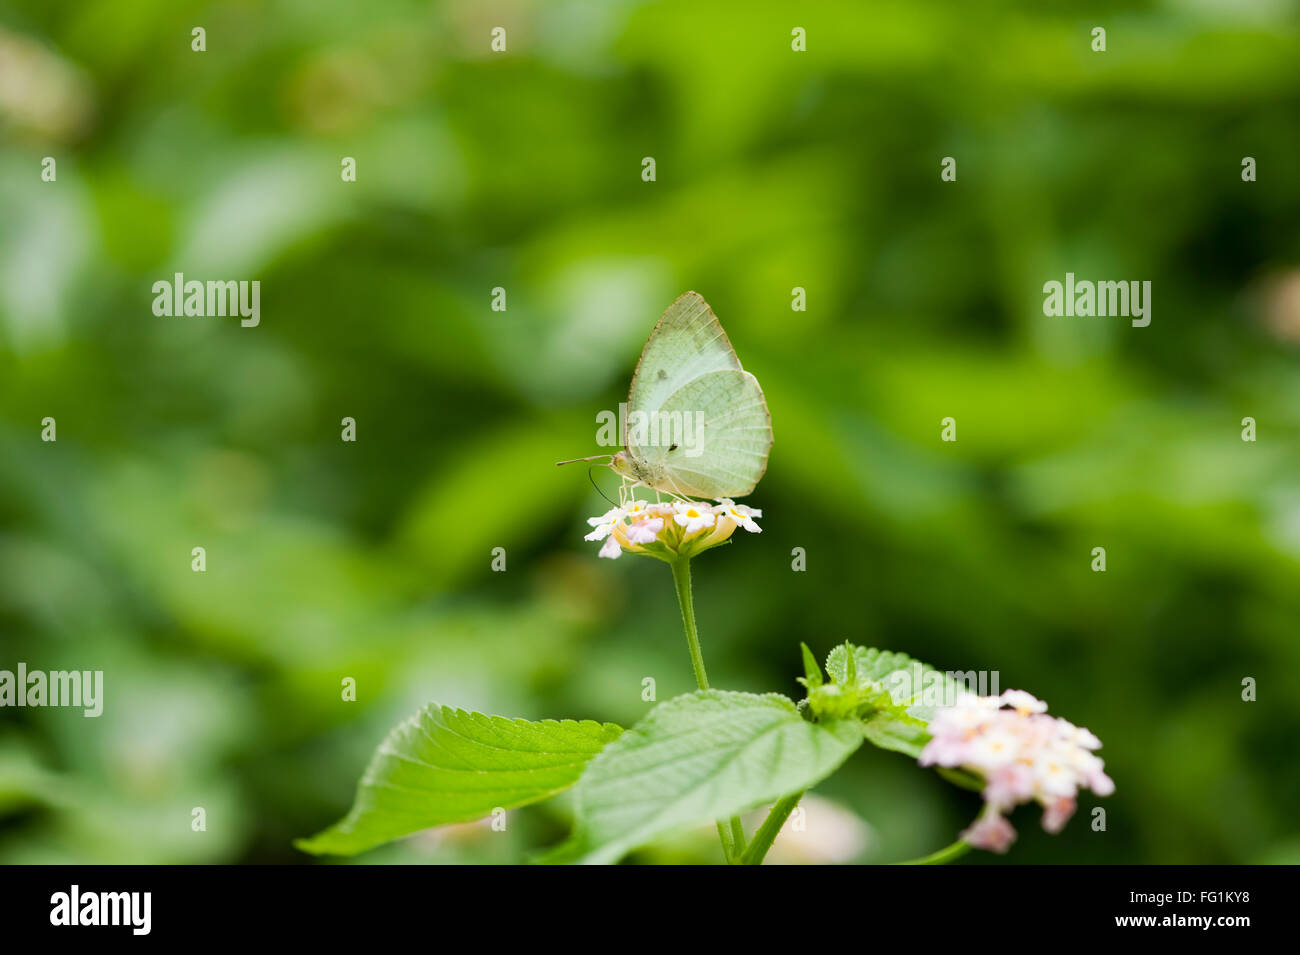 Butterfly ; Mottled Emigrant ; India - Stock Image